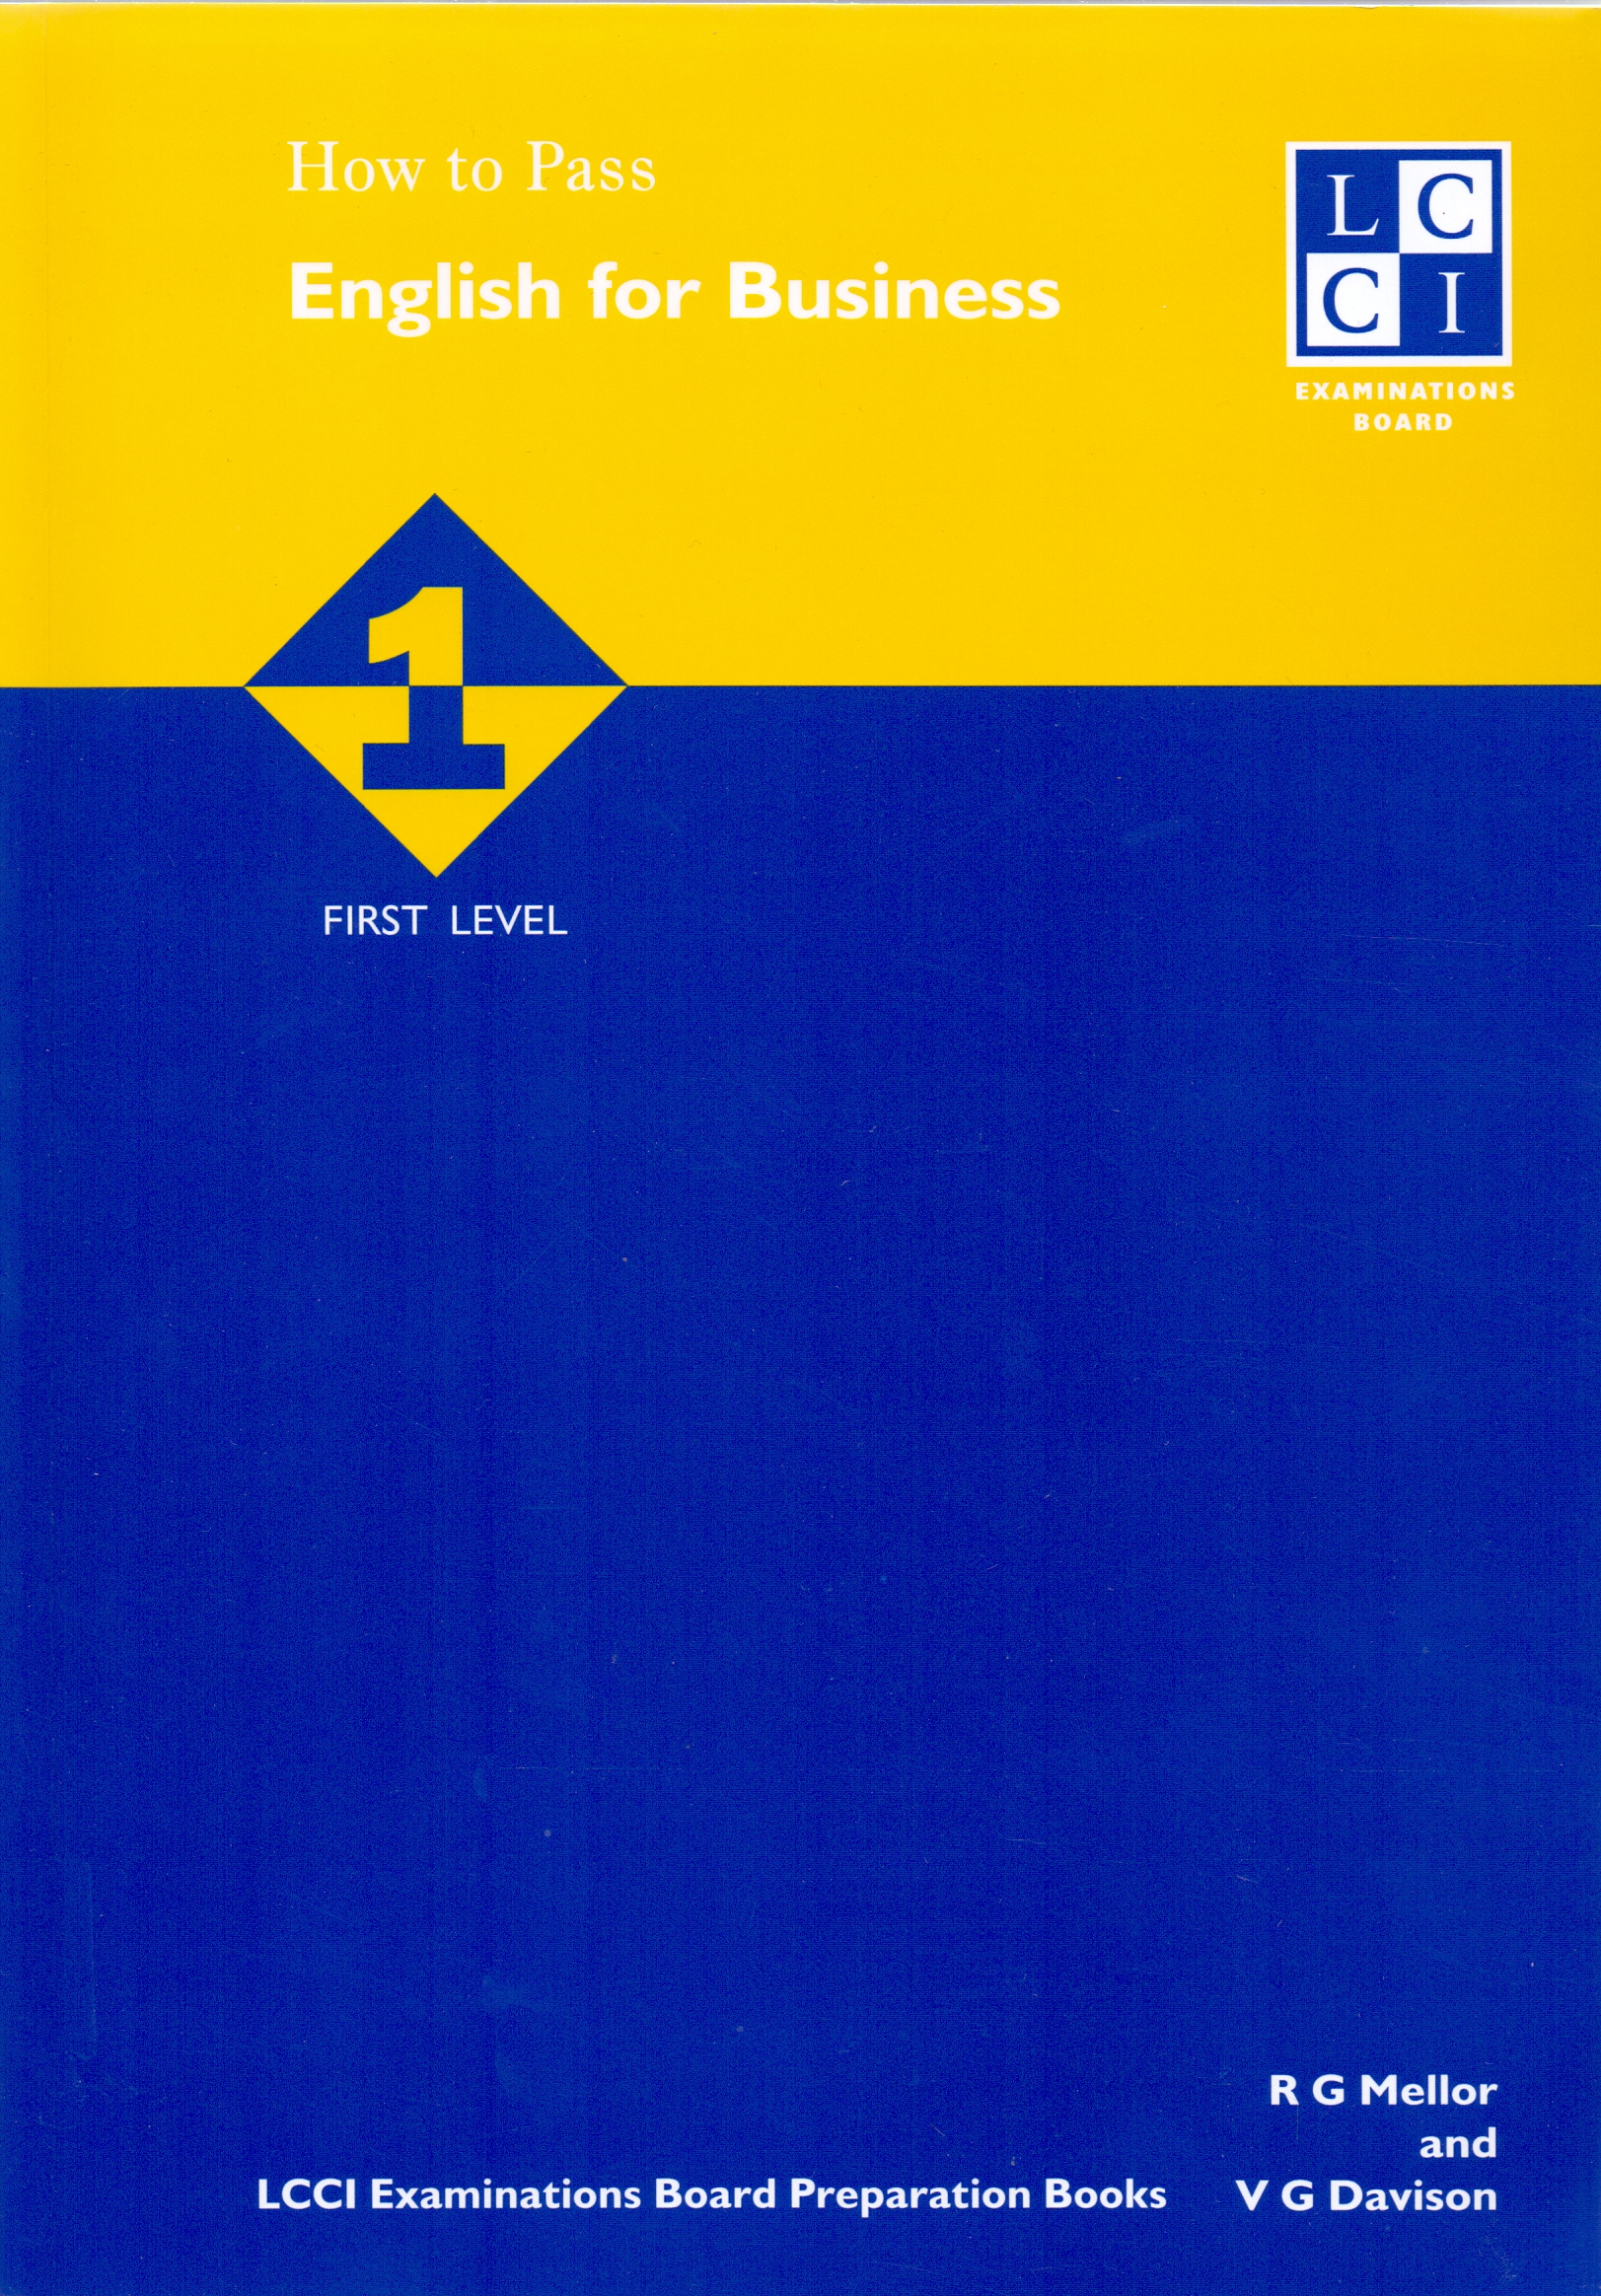 How to Pass - English for Business: Band 1, First Level - Robert G Mellor [Softcover, 2. Auflage 2000]